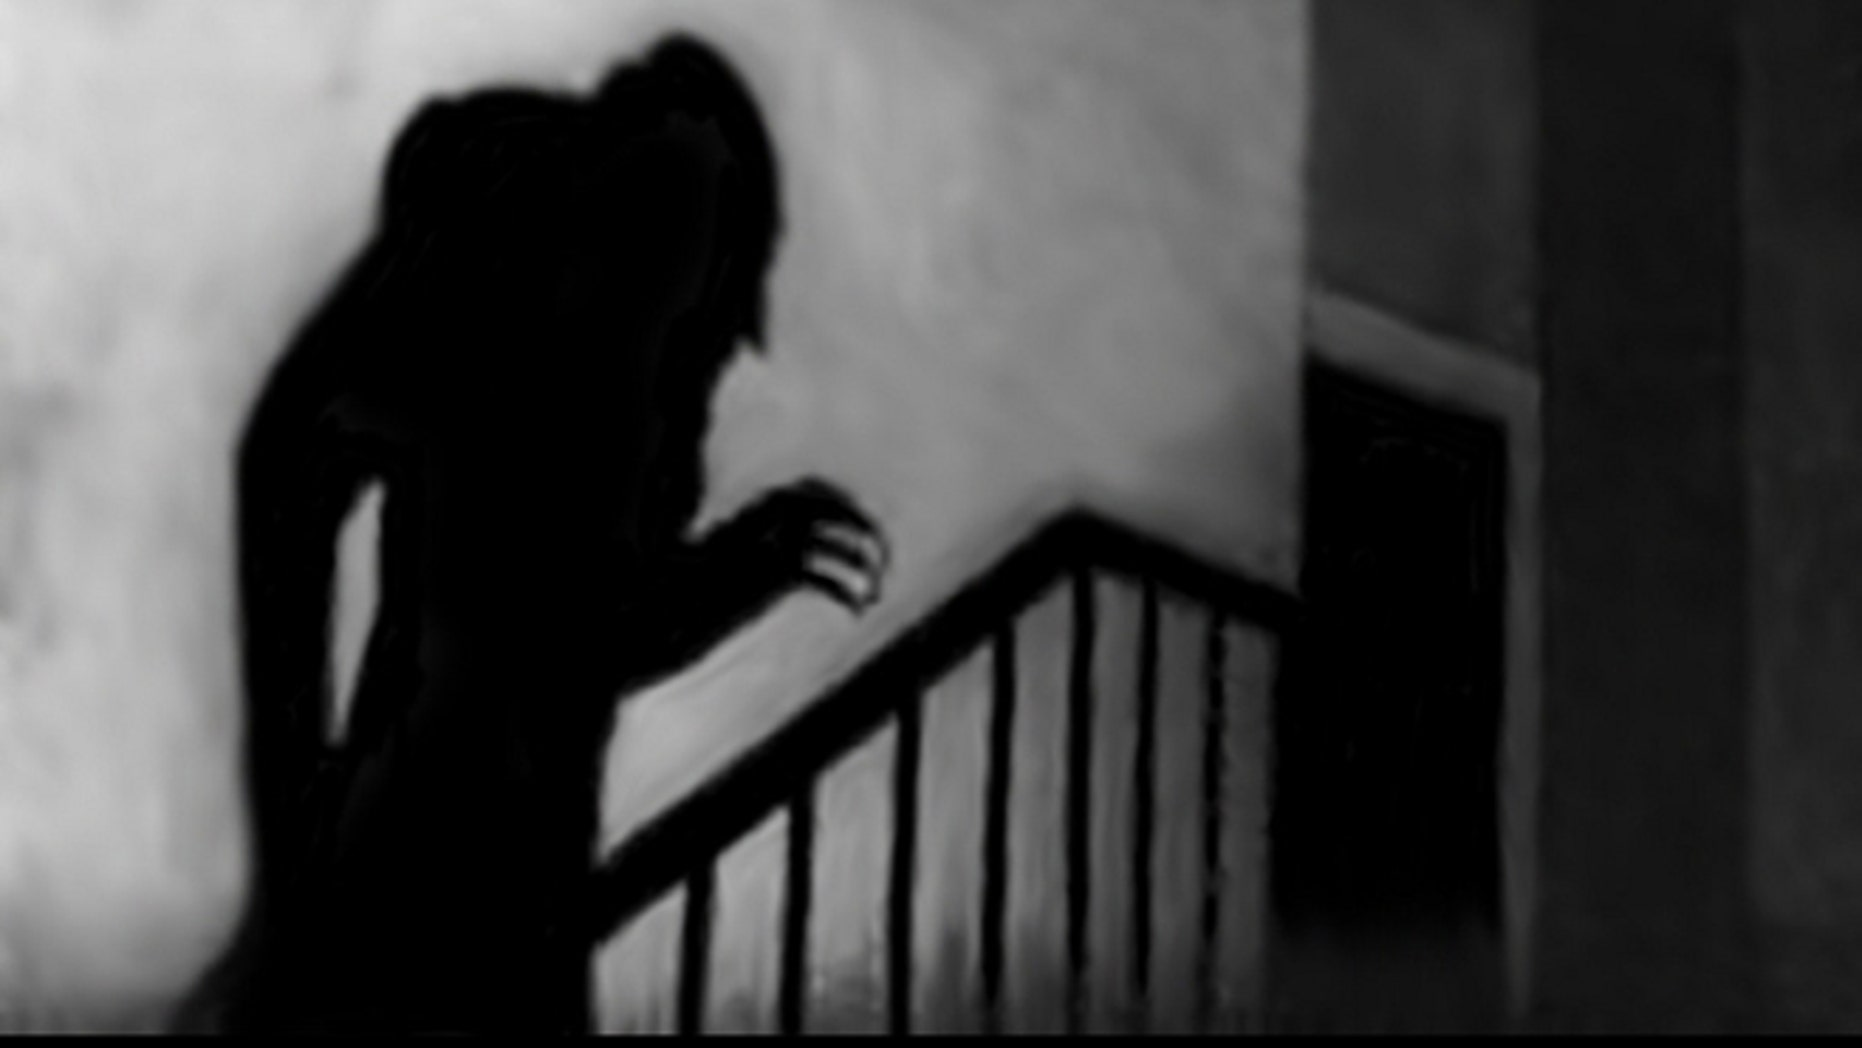 """A scene from the 1922 classic """"Nosferatu"""" one of the earliest depictions of vampires in cinema. But far scarier are the real world fiends out to hunt you down."""